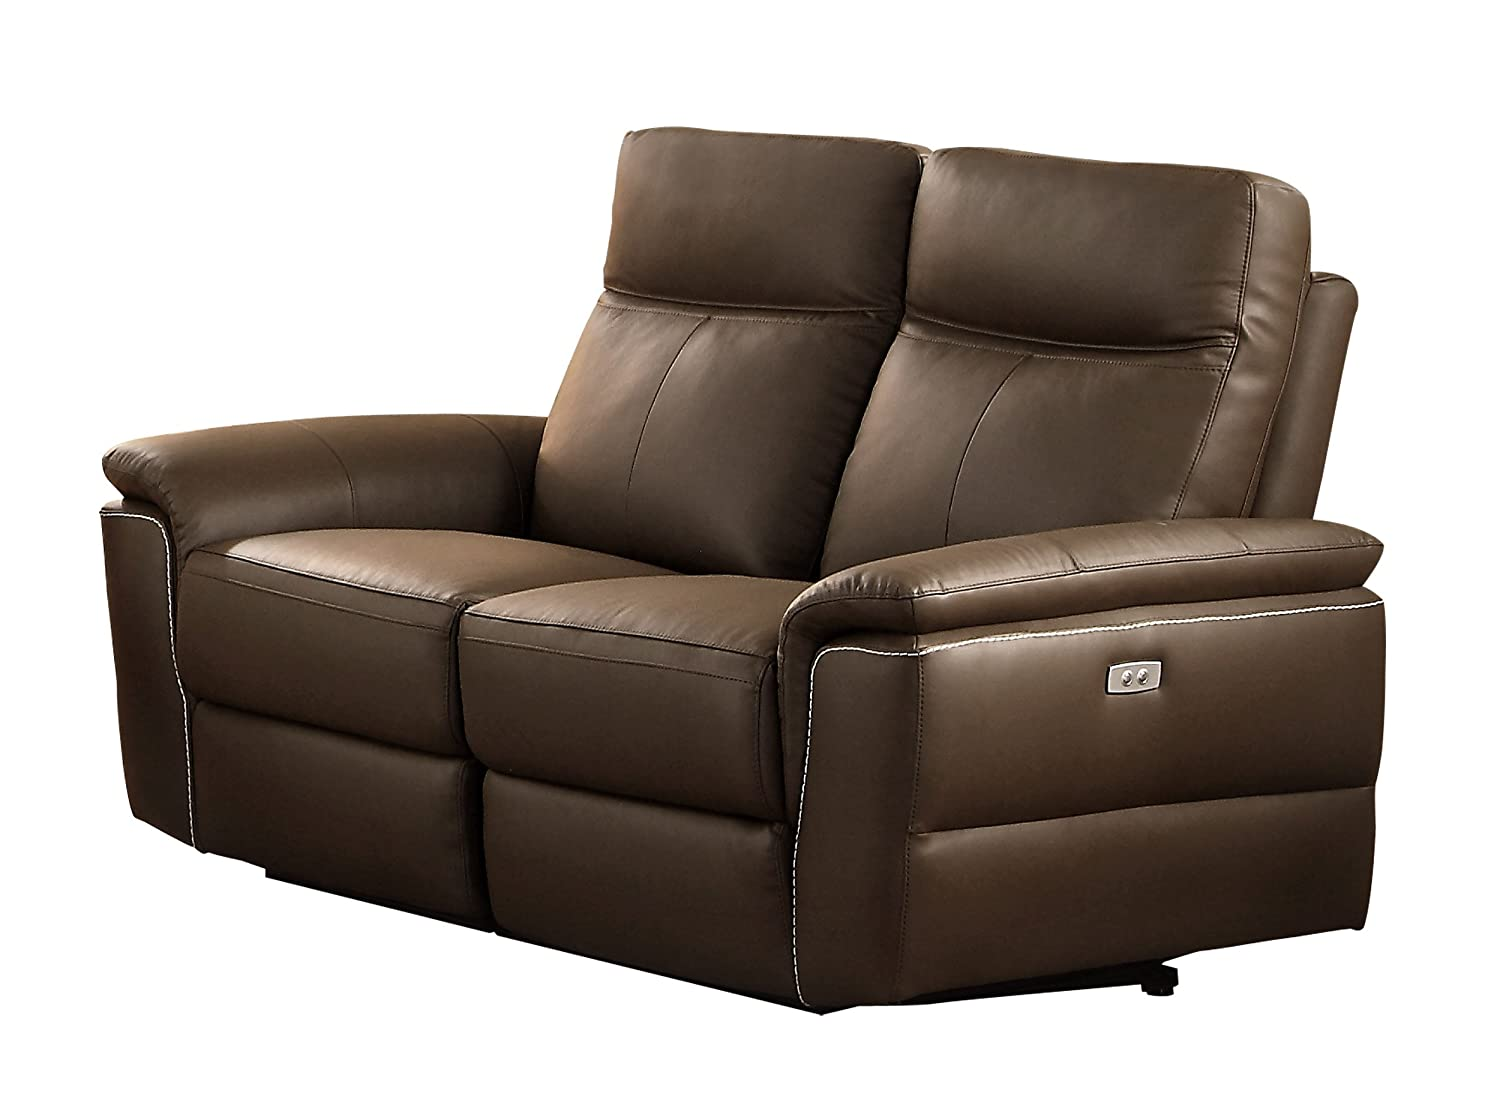 Homelegance Olympia Modern Design Power Reclining Loveseat Top Grain Genuine Leather Match